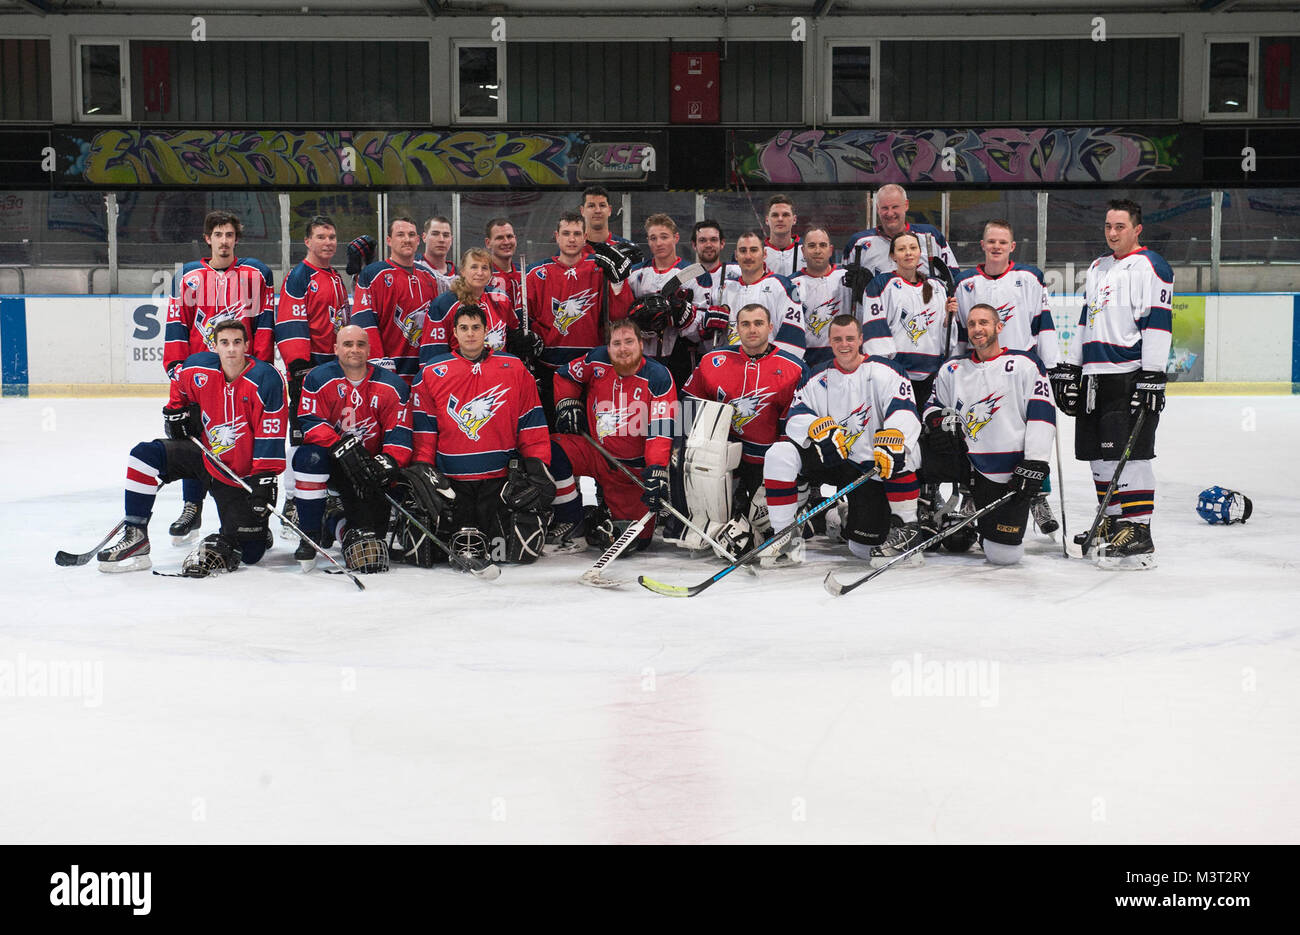 430871f13 Members of the Kaiserslautern Military Community Eagles Hockey Team pose  for a group photo during practice match in Zweibrucken